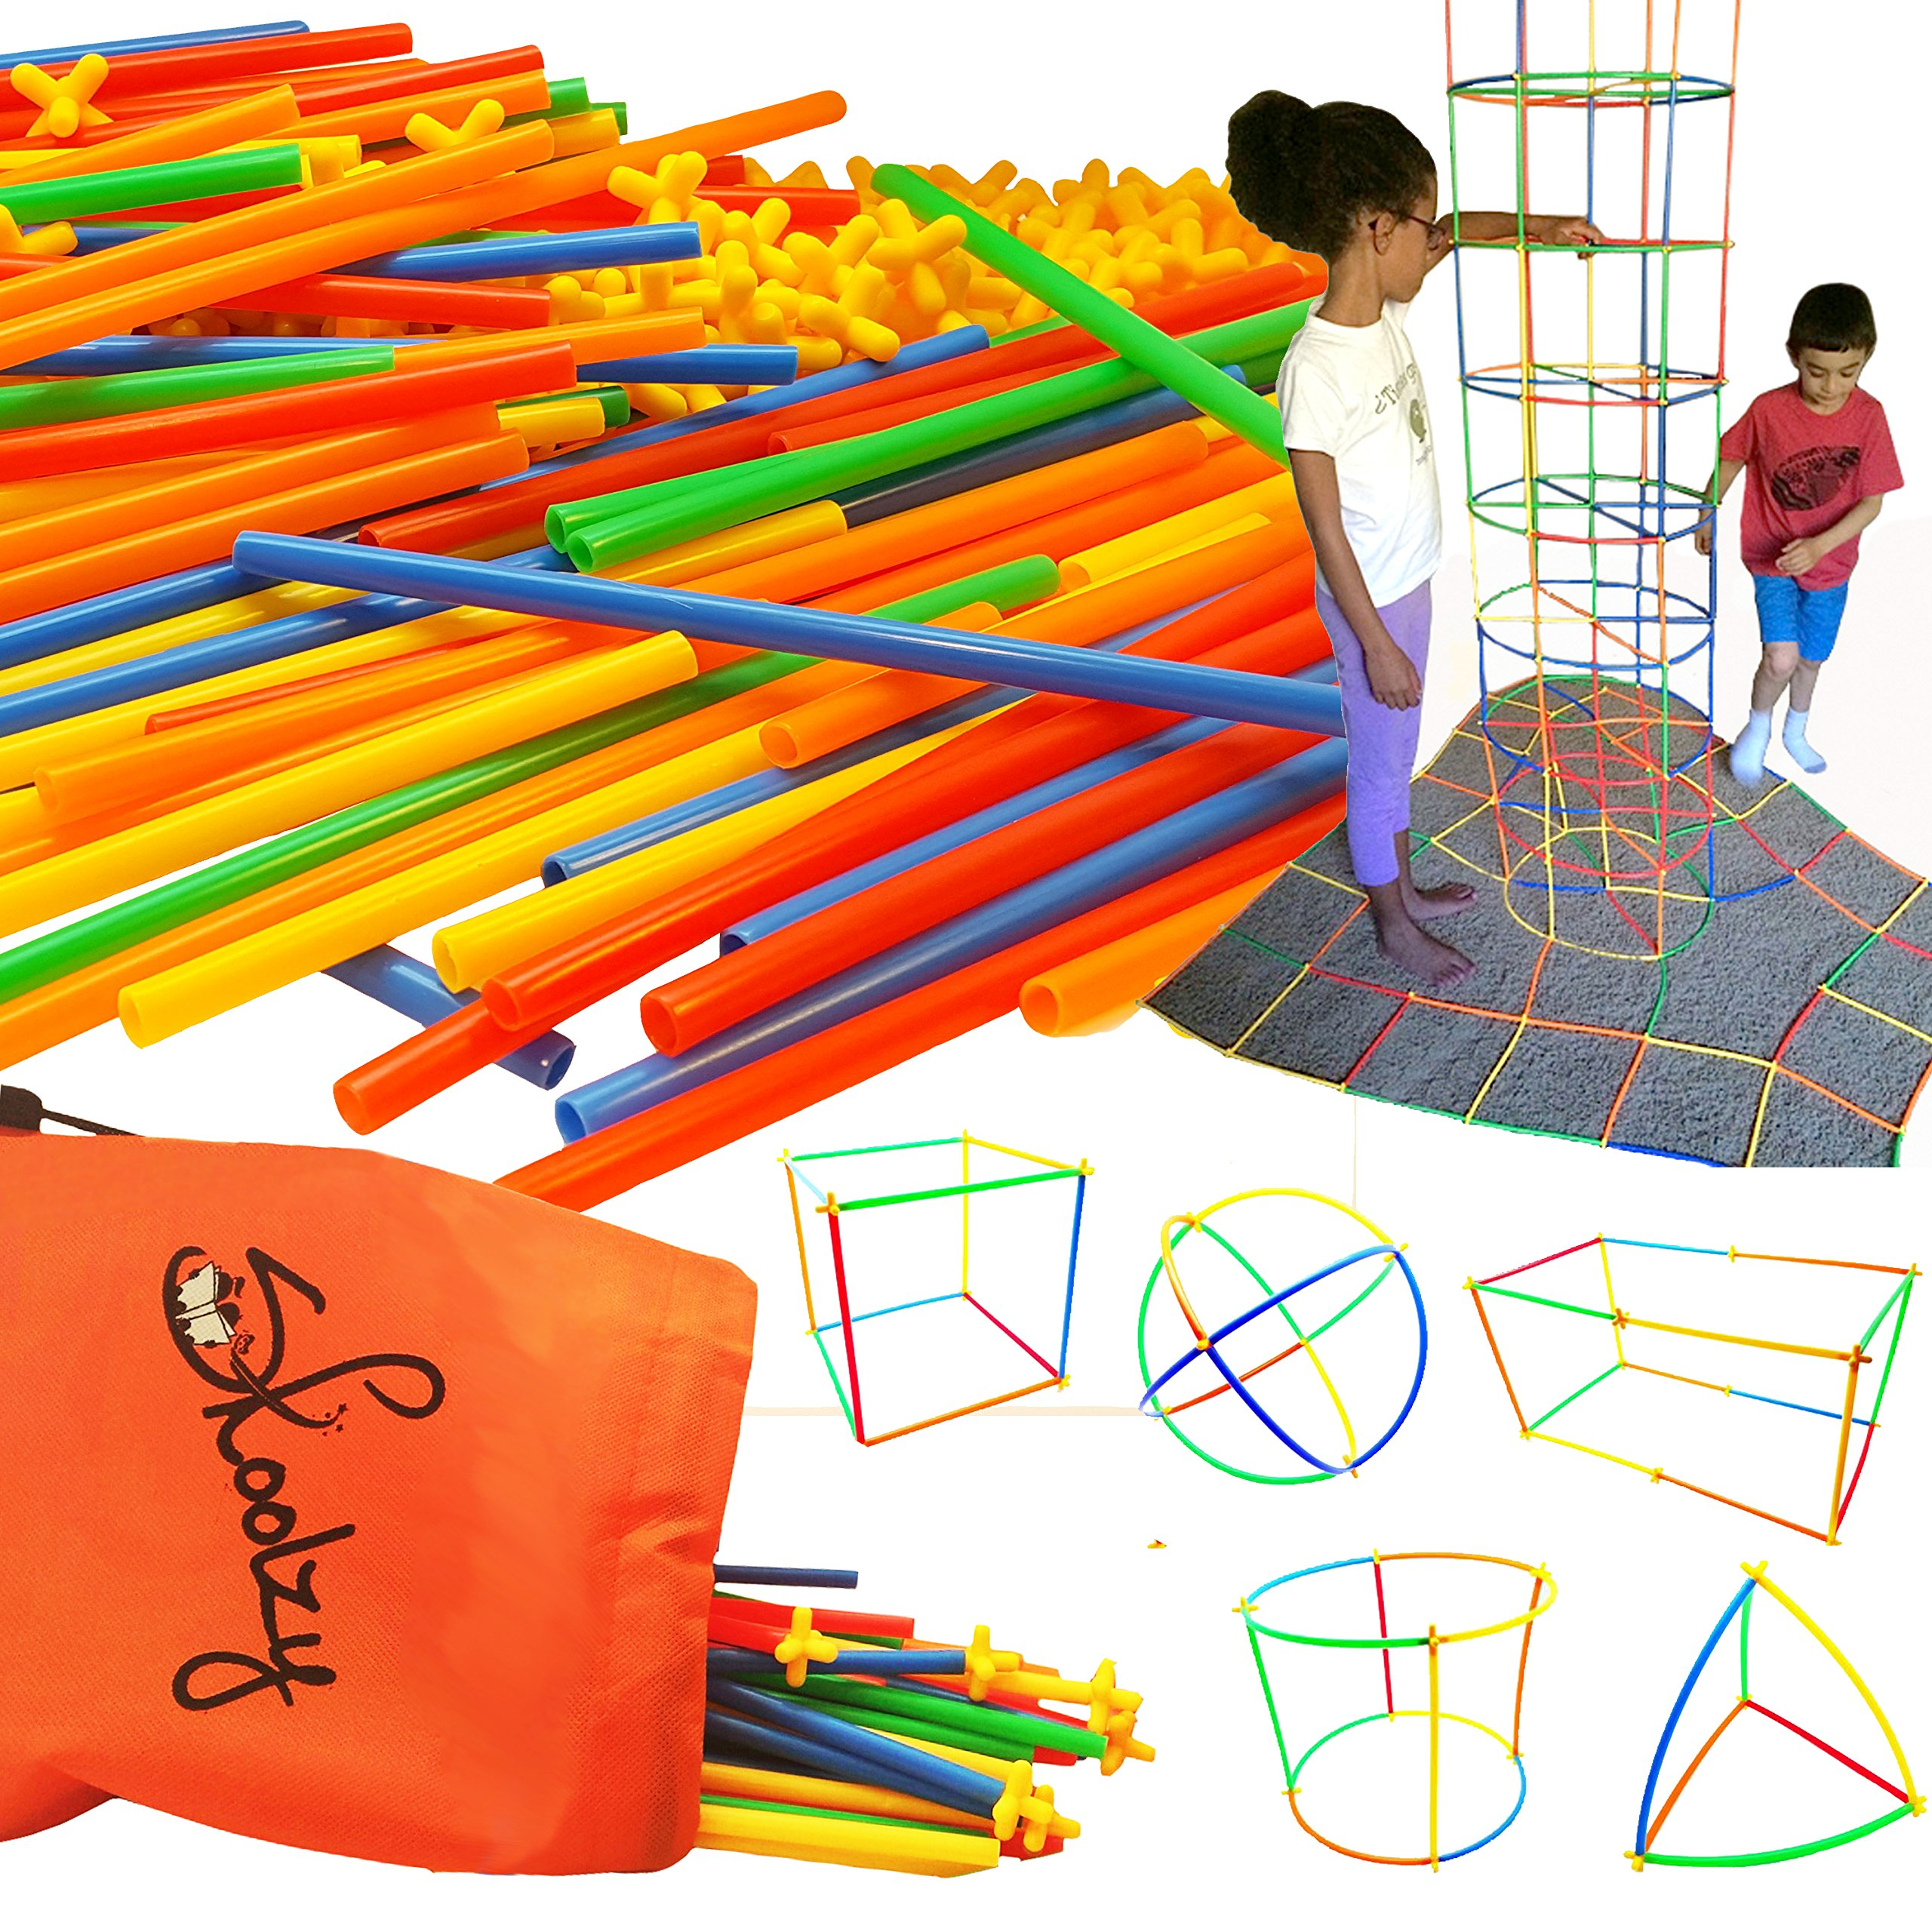 stem skill toys skoolzy straw structures kid connection building